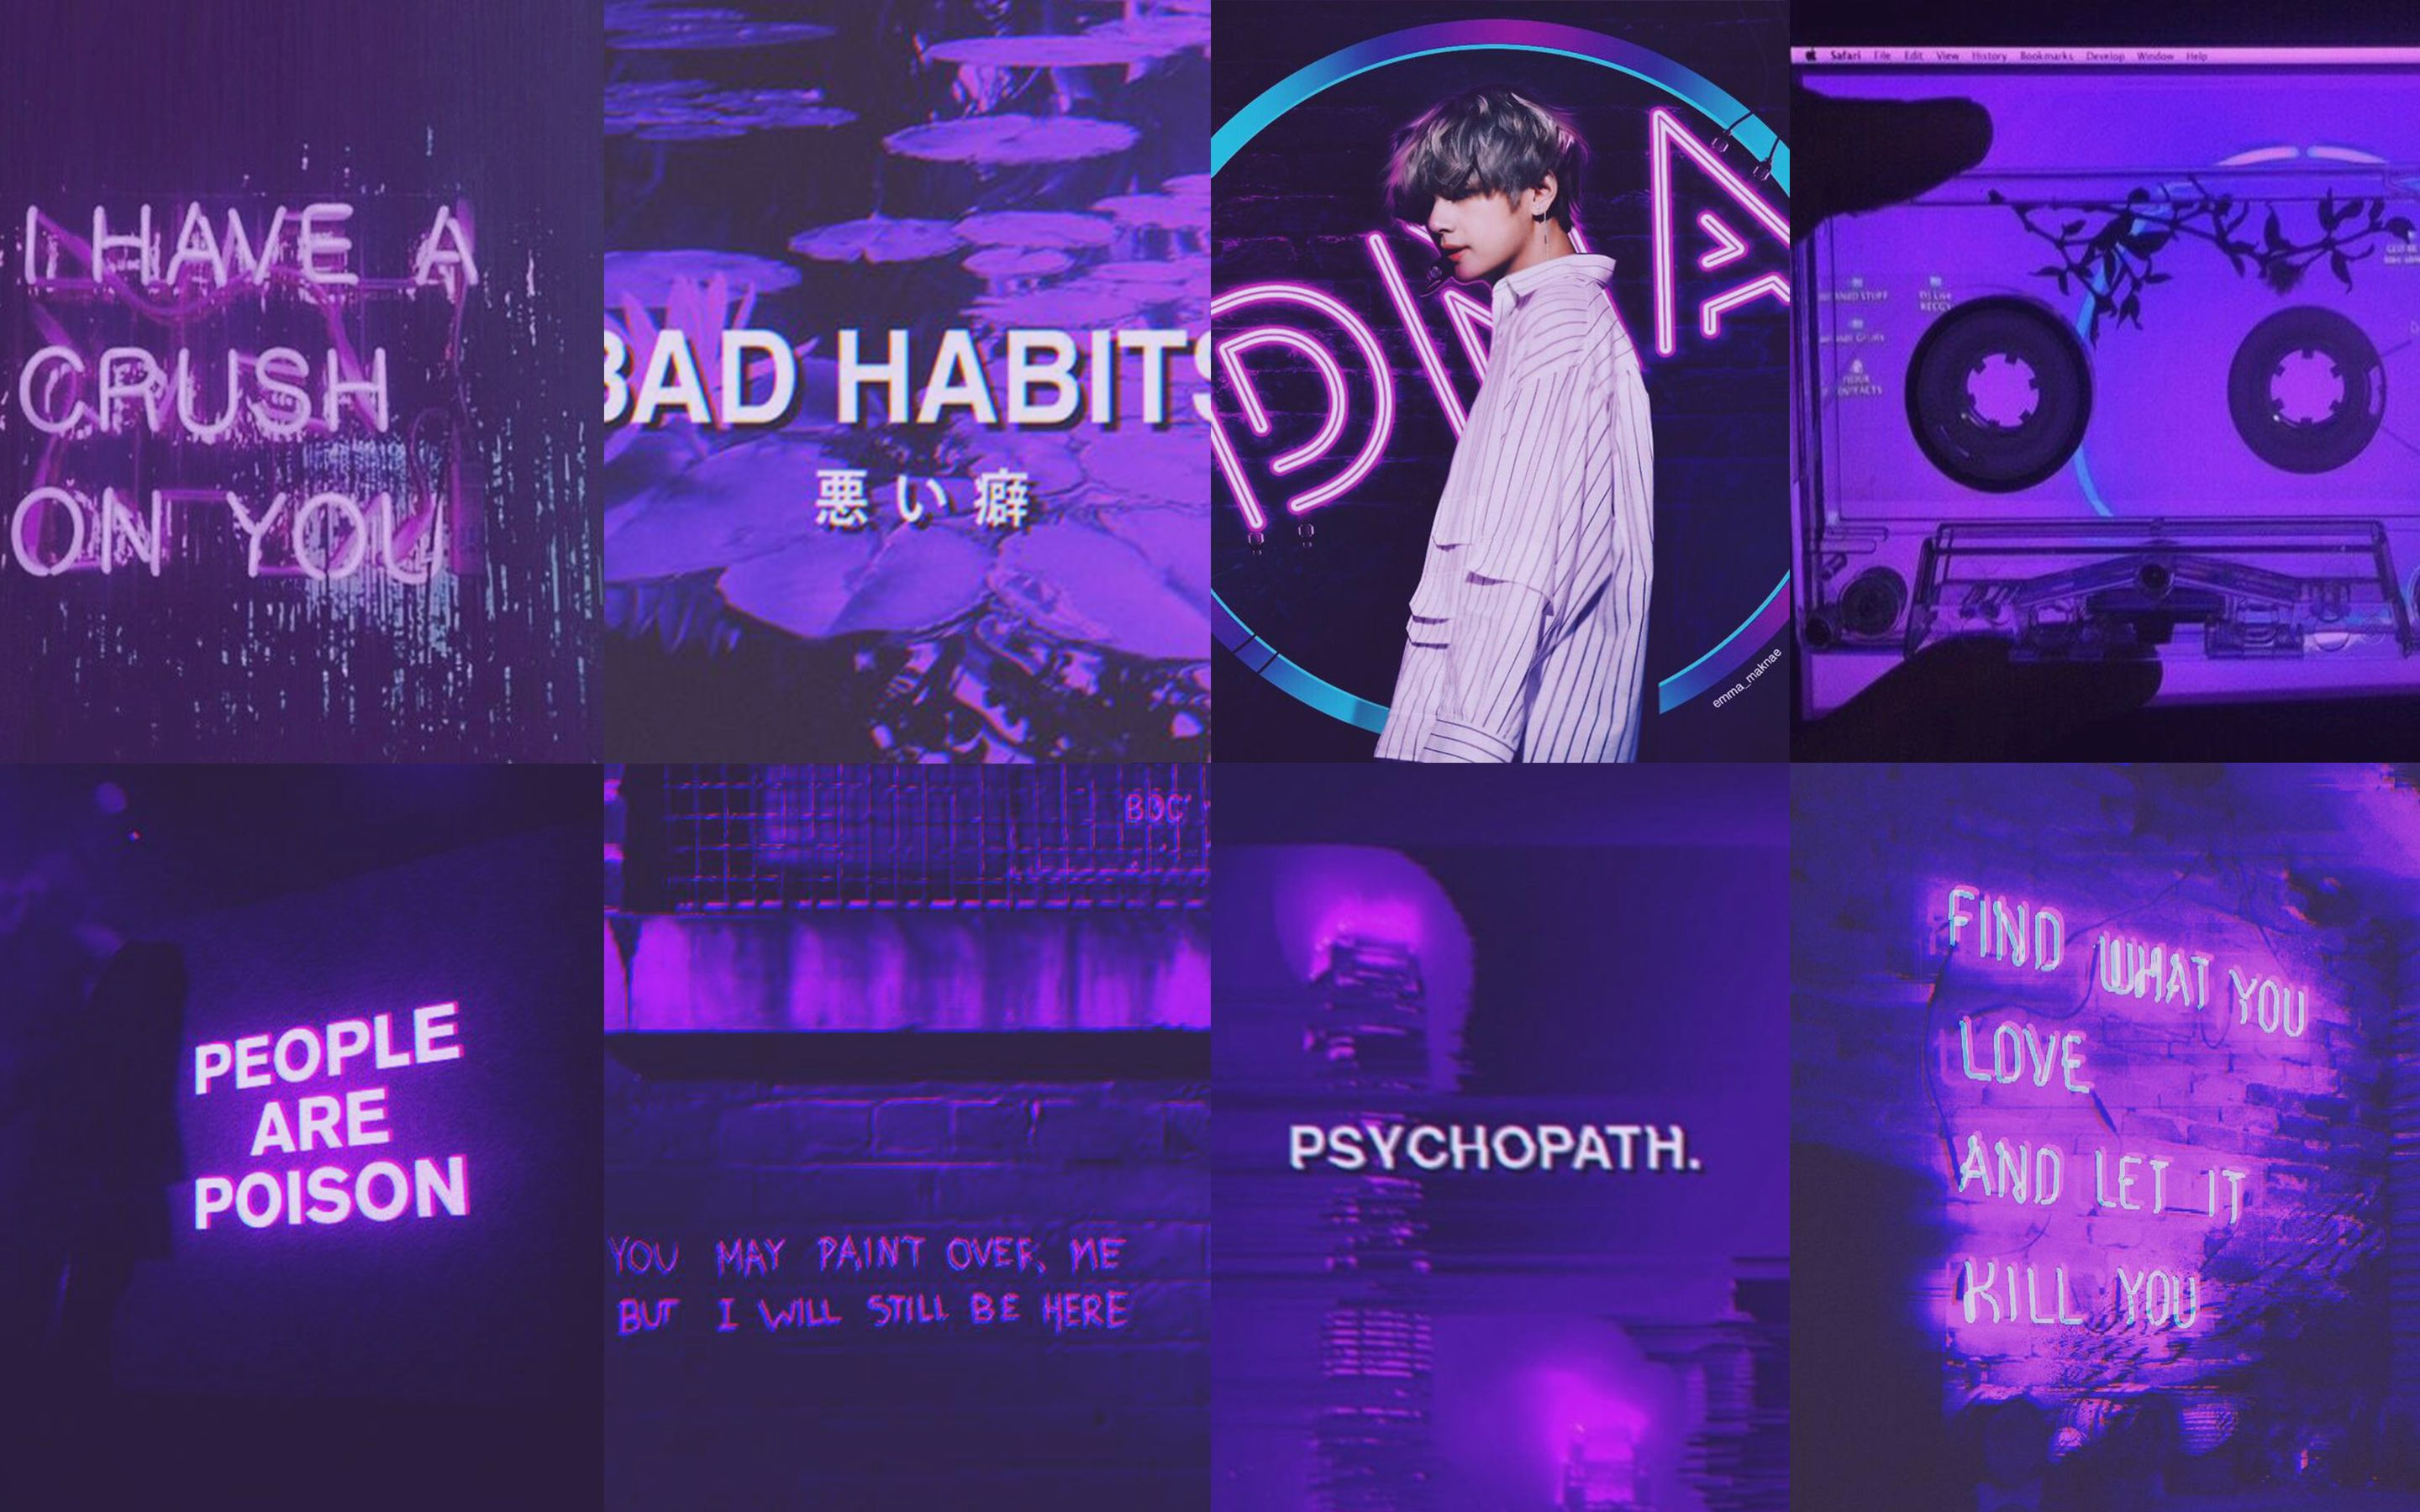 Taehyung Aesthetic Purple Neon Bts Purple Aesthetic Neon Aesthetic